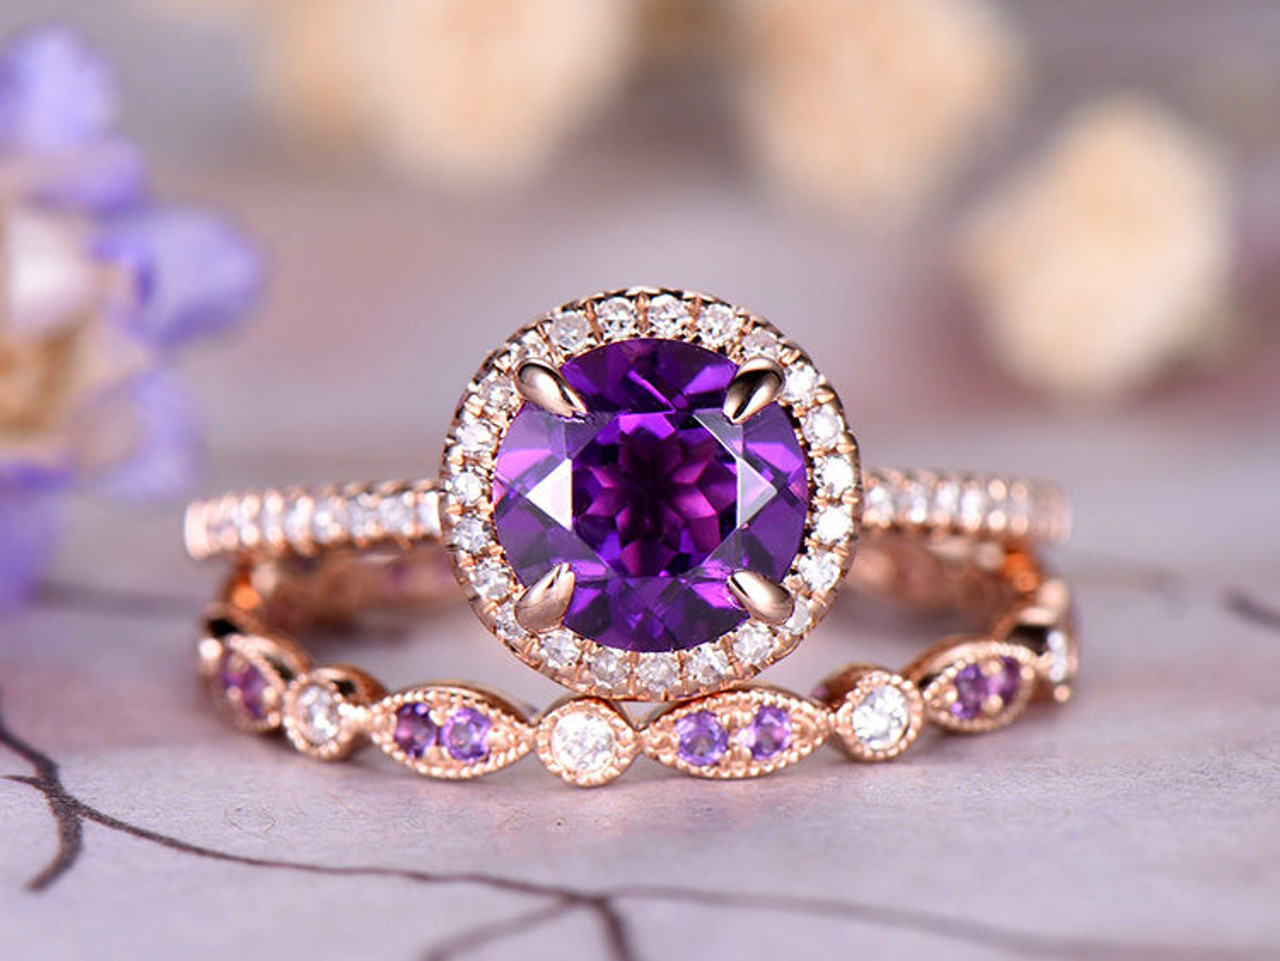 7mm Round Cut Amethyst Engagement Ring Set Marquise Dianond Wedding